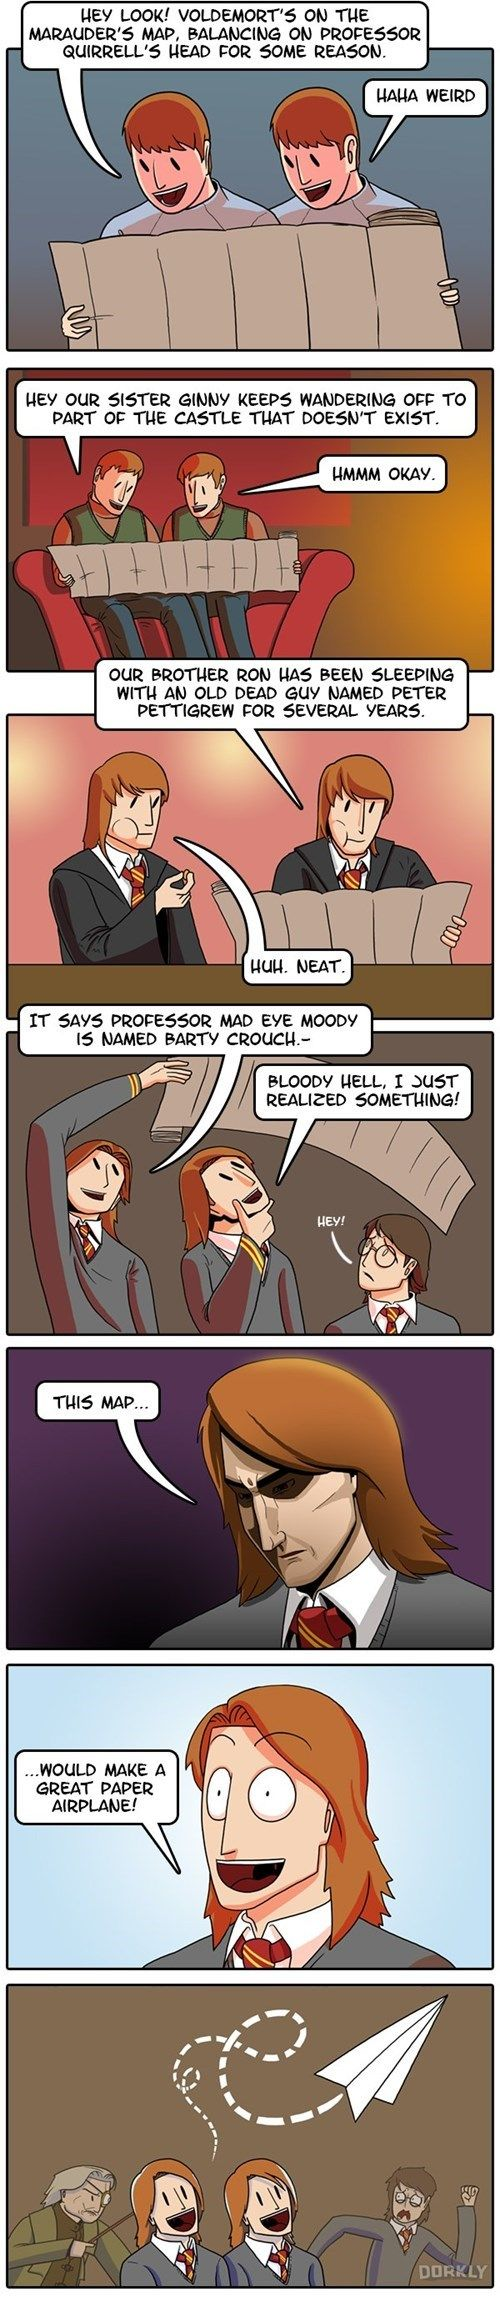 The Weasley Twins Could Have Been the Heroes of the Harry Potter Series - Lol this is fabulous!